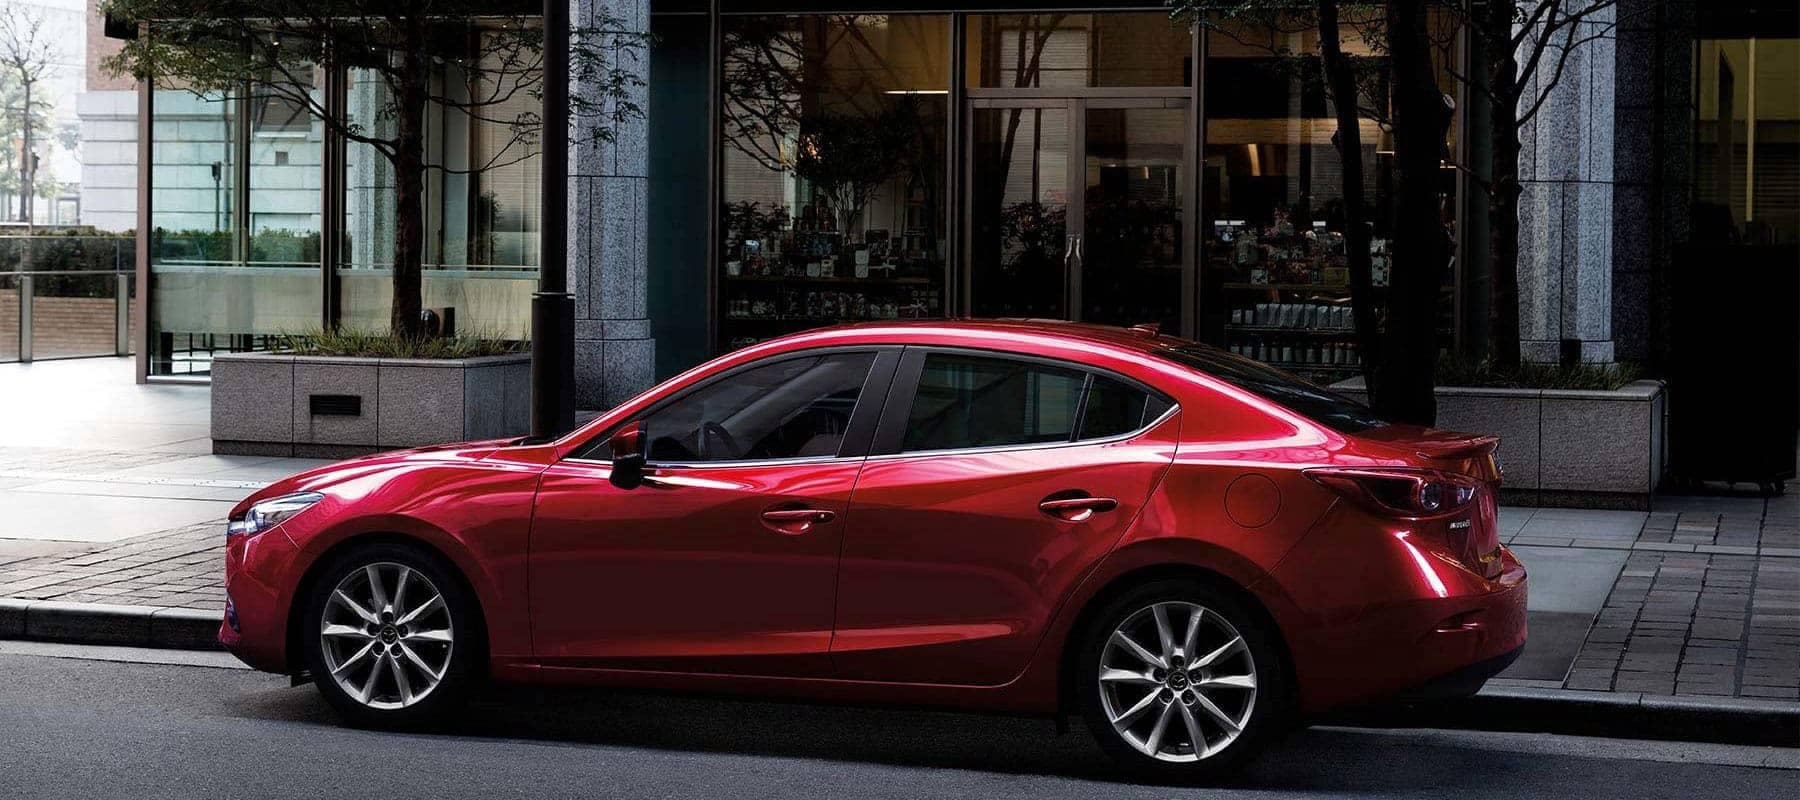 2018 Mazda3 sedan parked on city street with restaurant behind